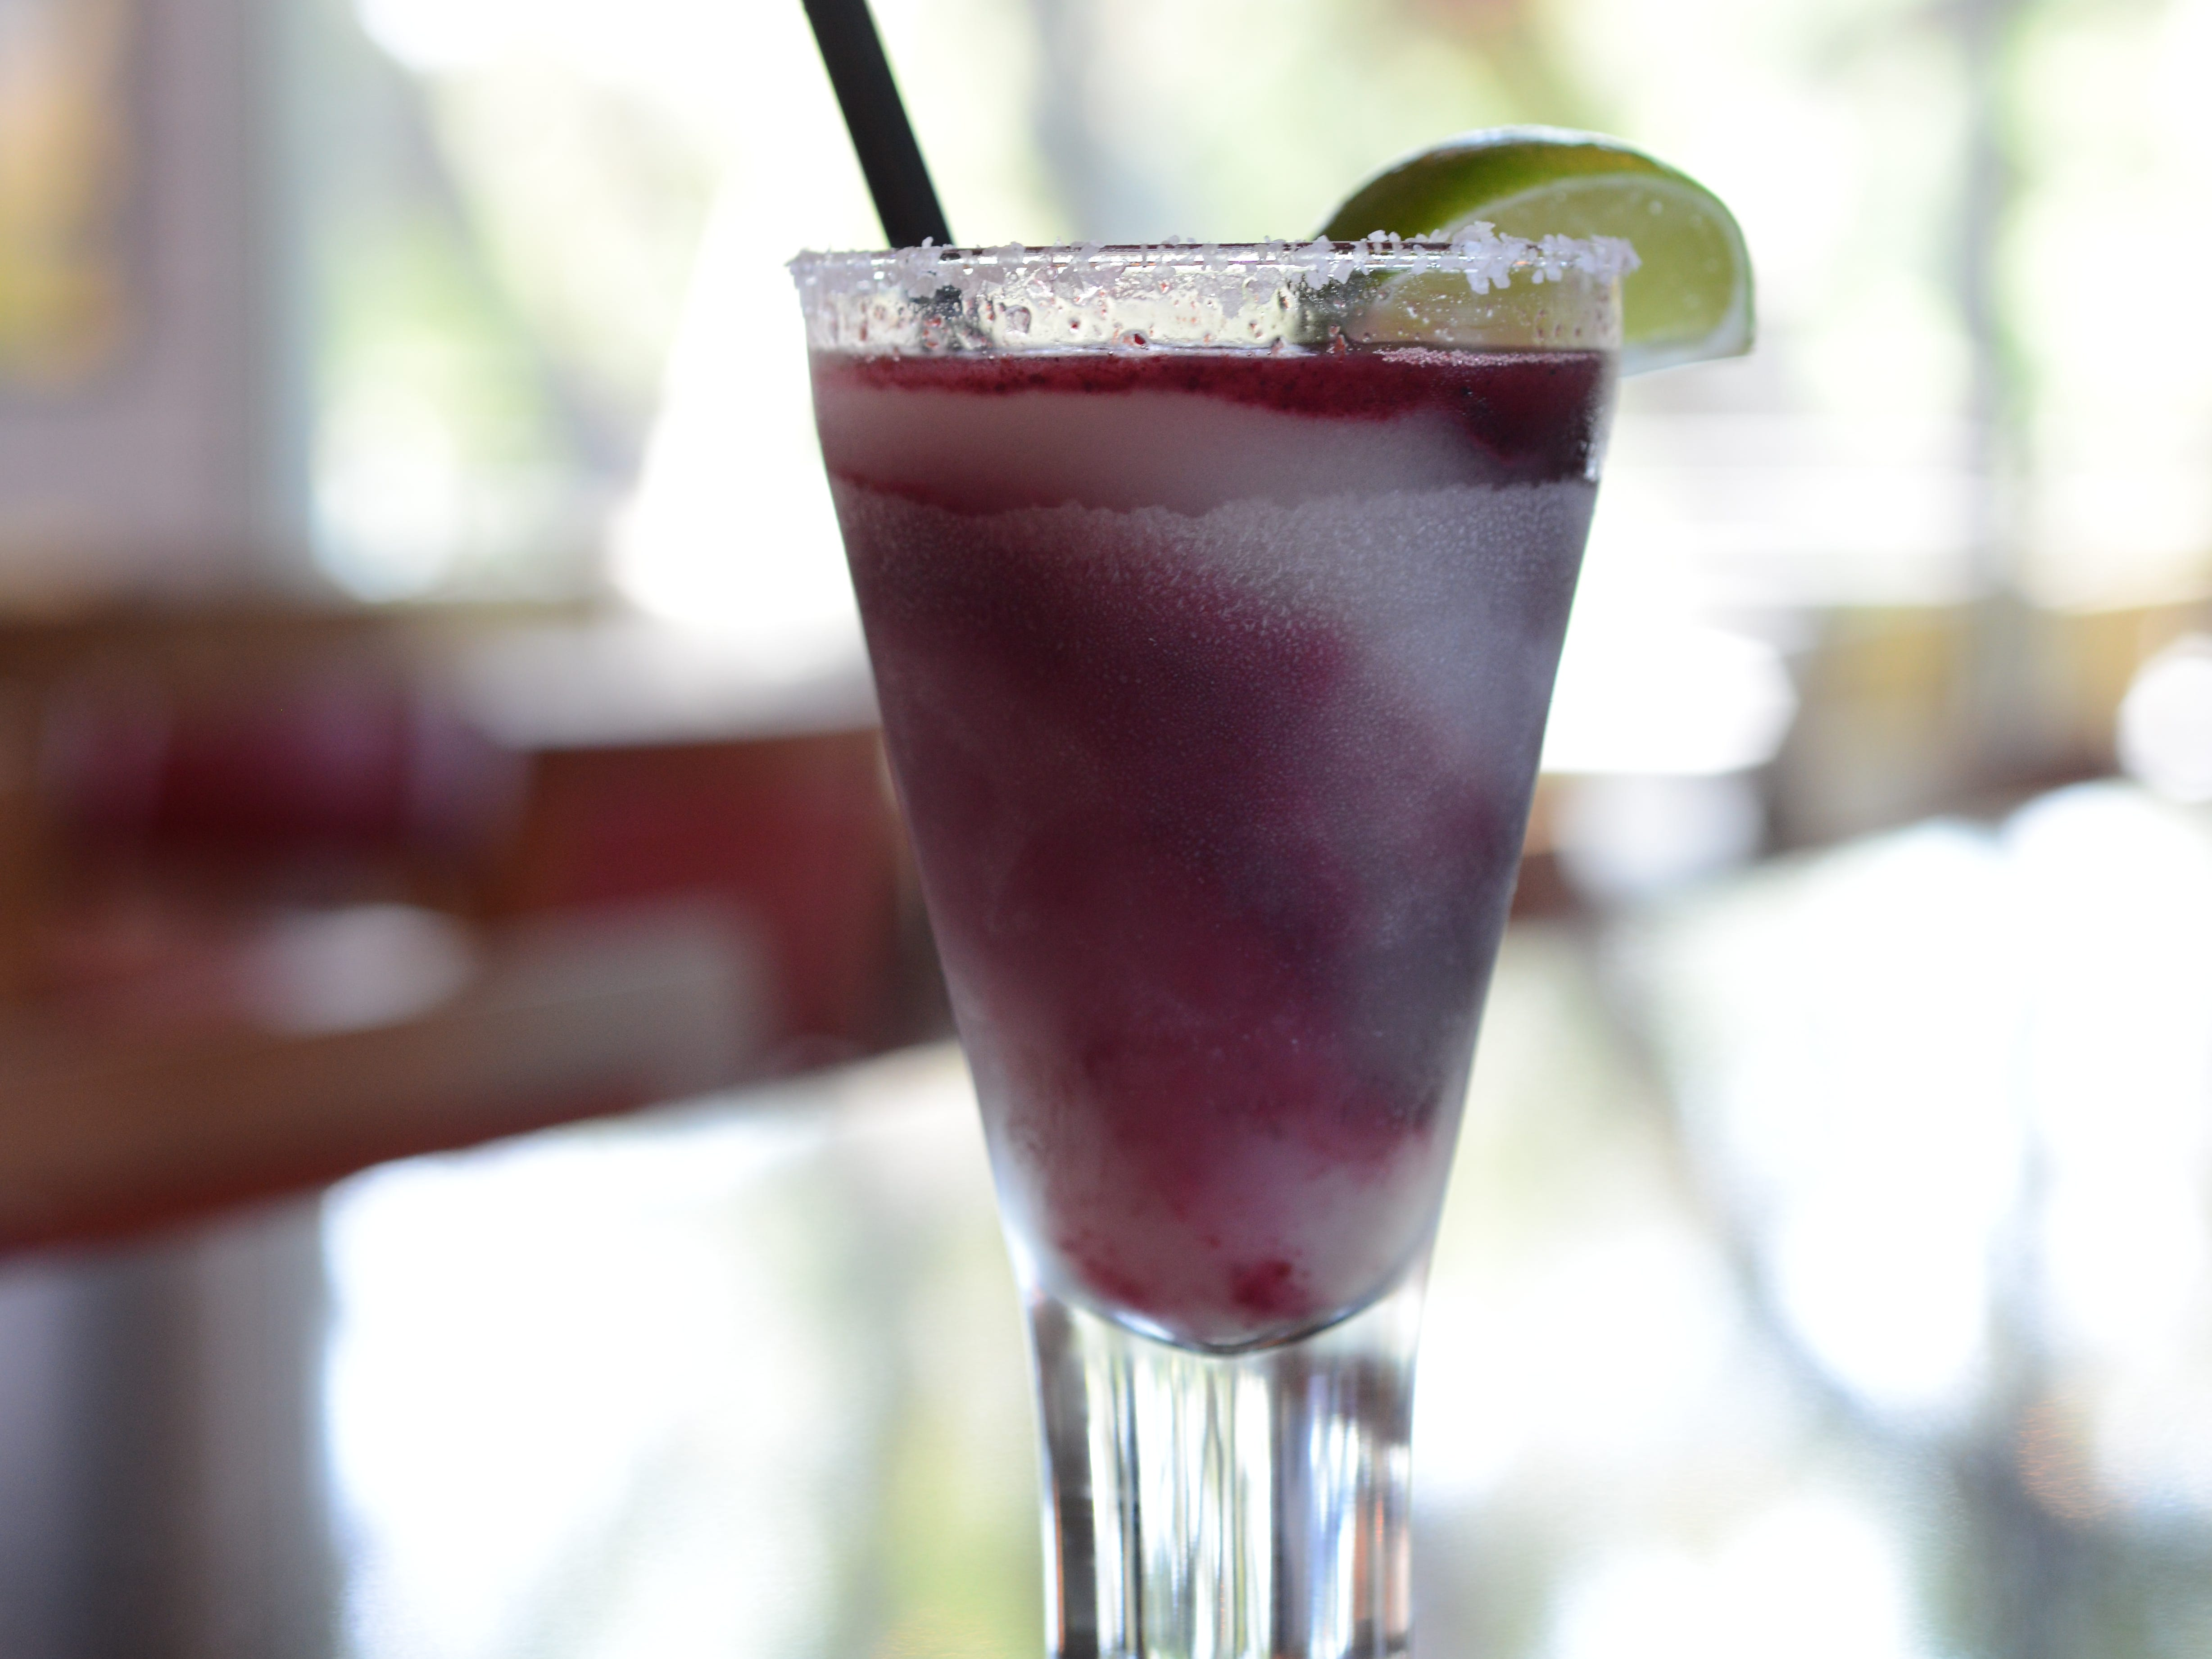 The huckleberry margarita at Roaring Fork.